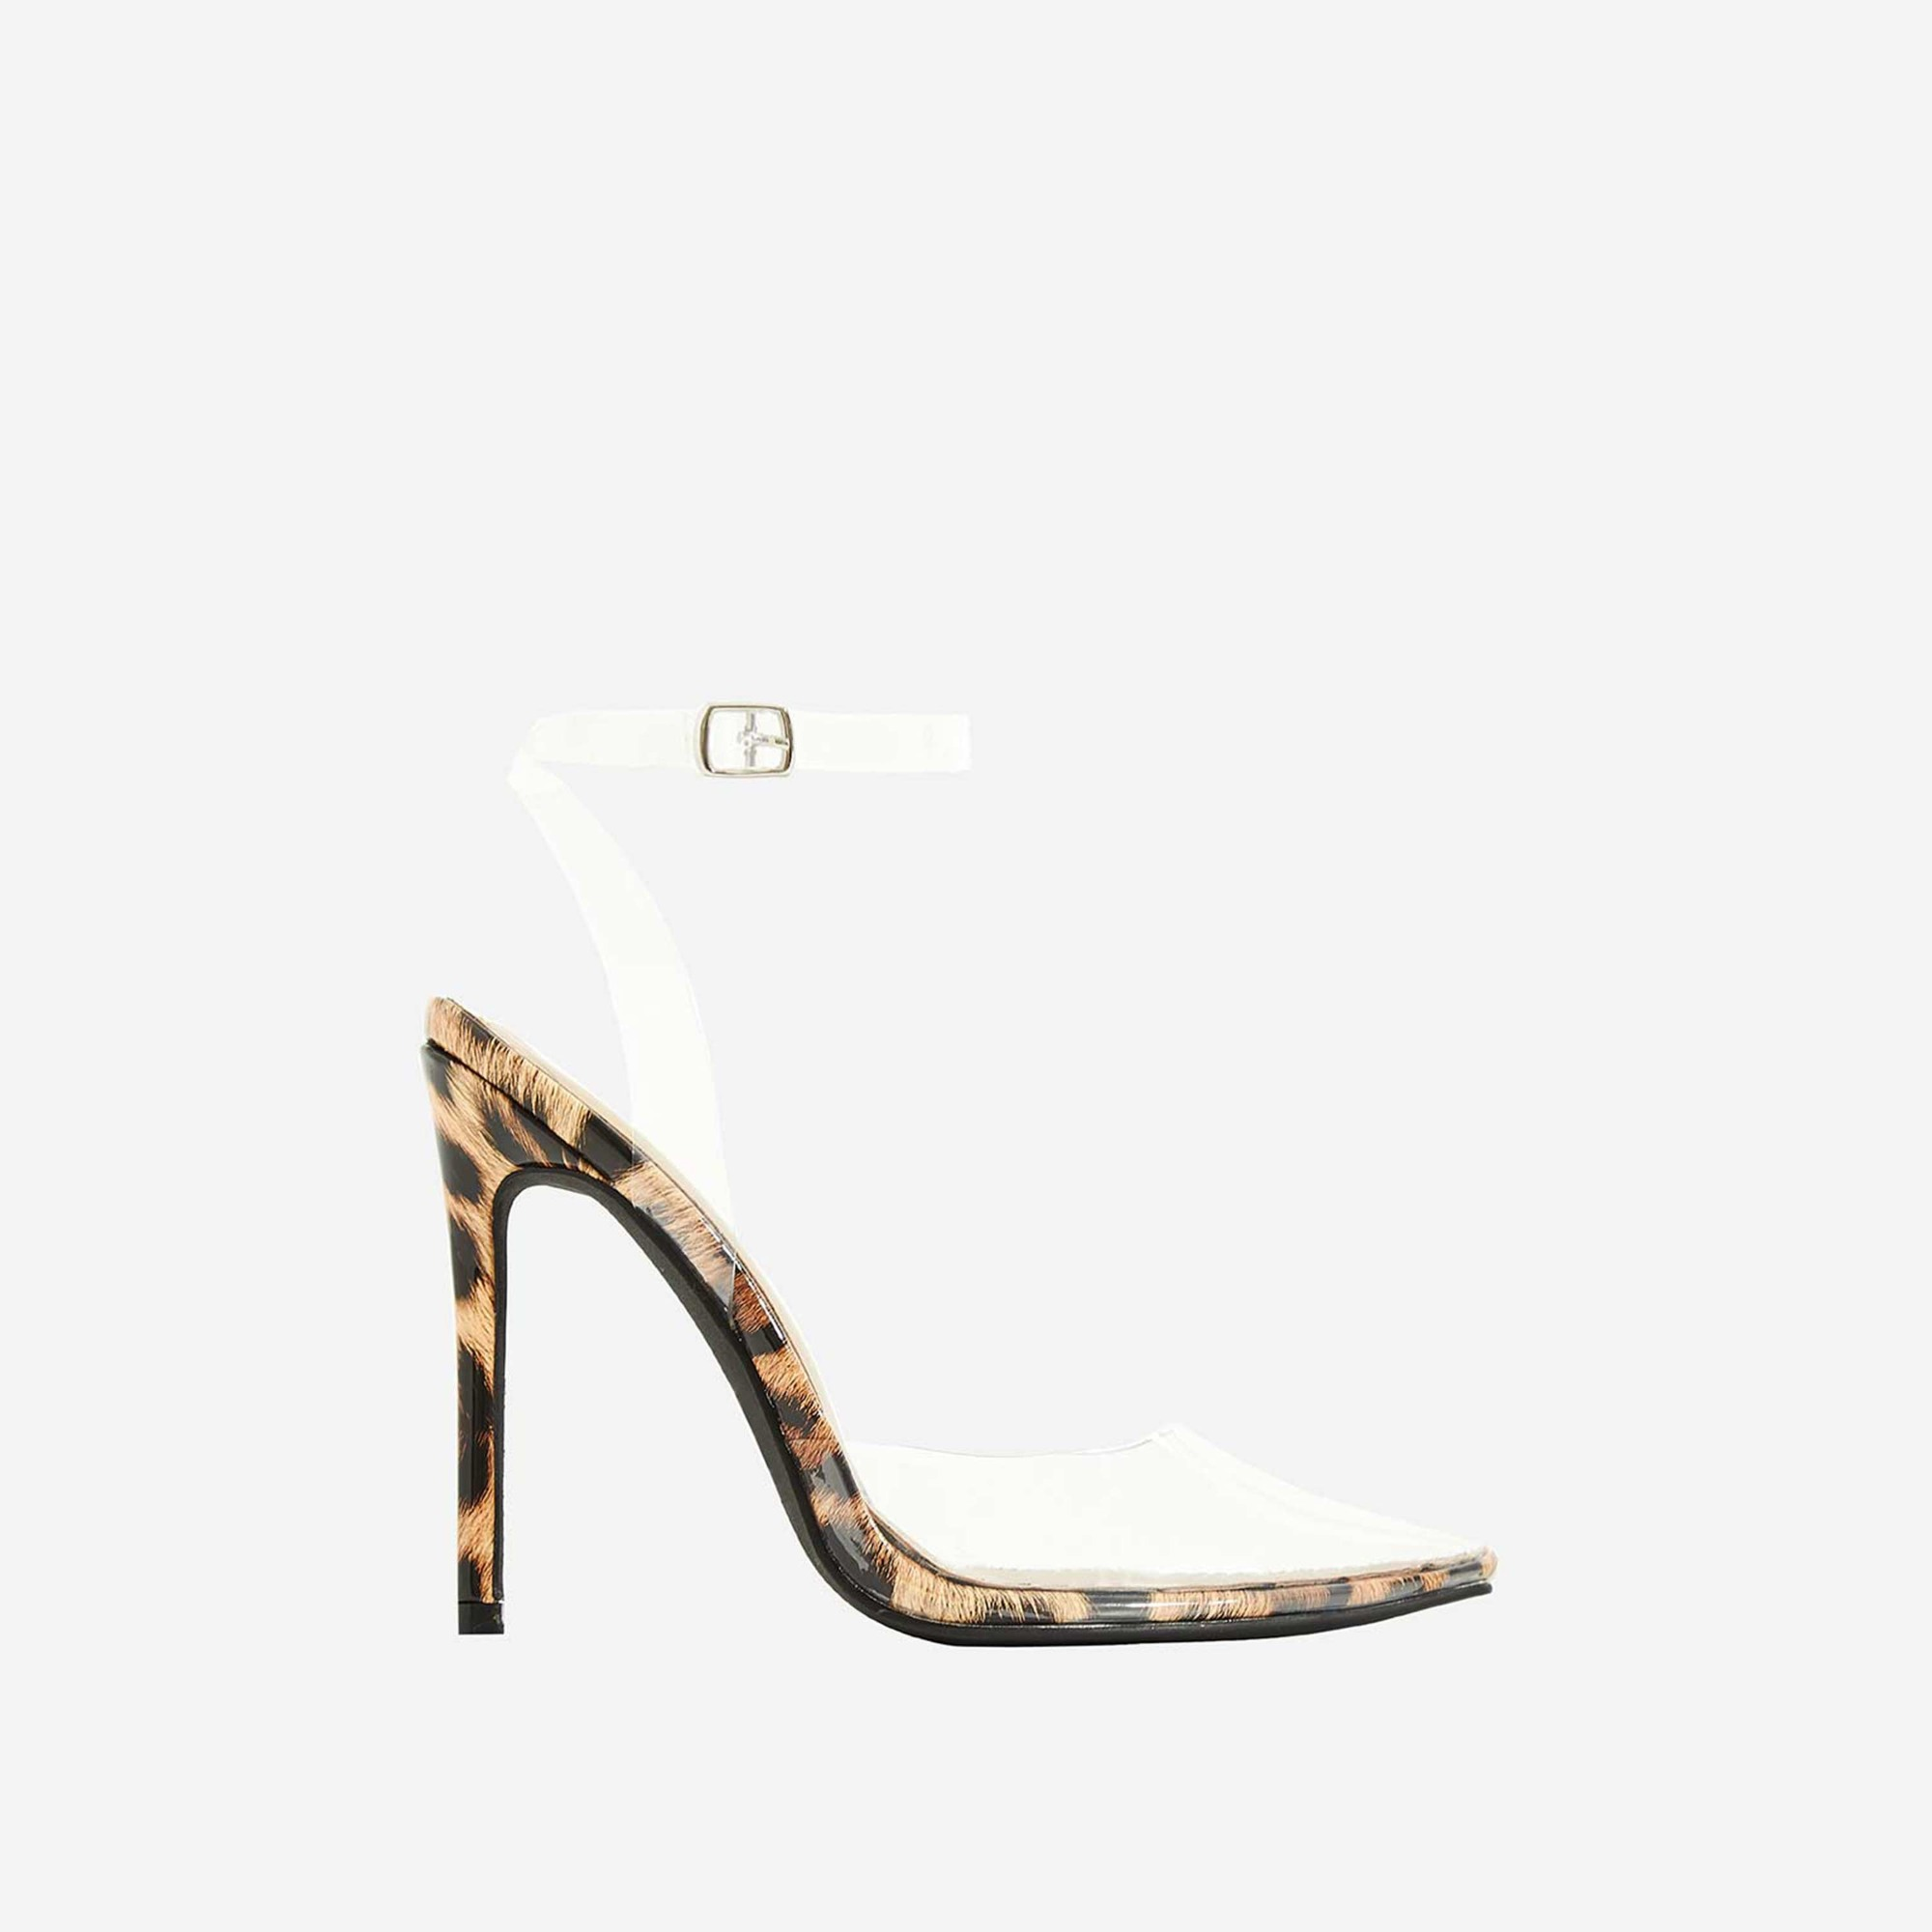 Icon Perspex Barely There Heel In Tan Leopard Print Patent